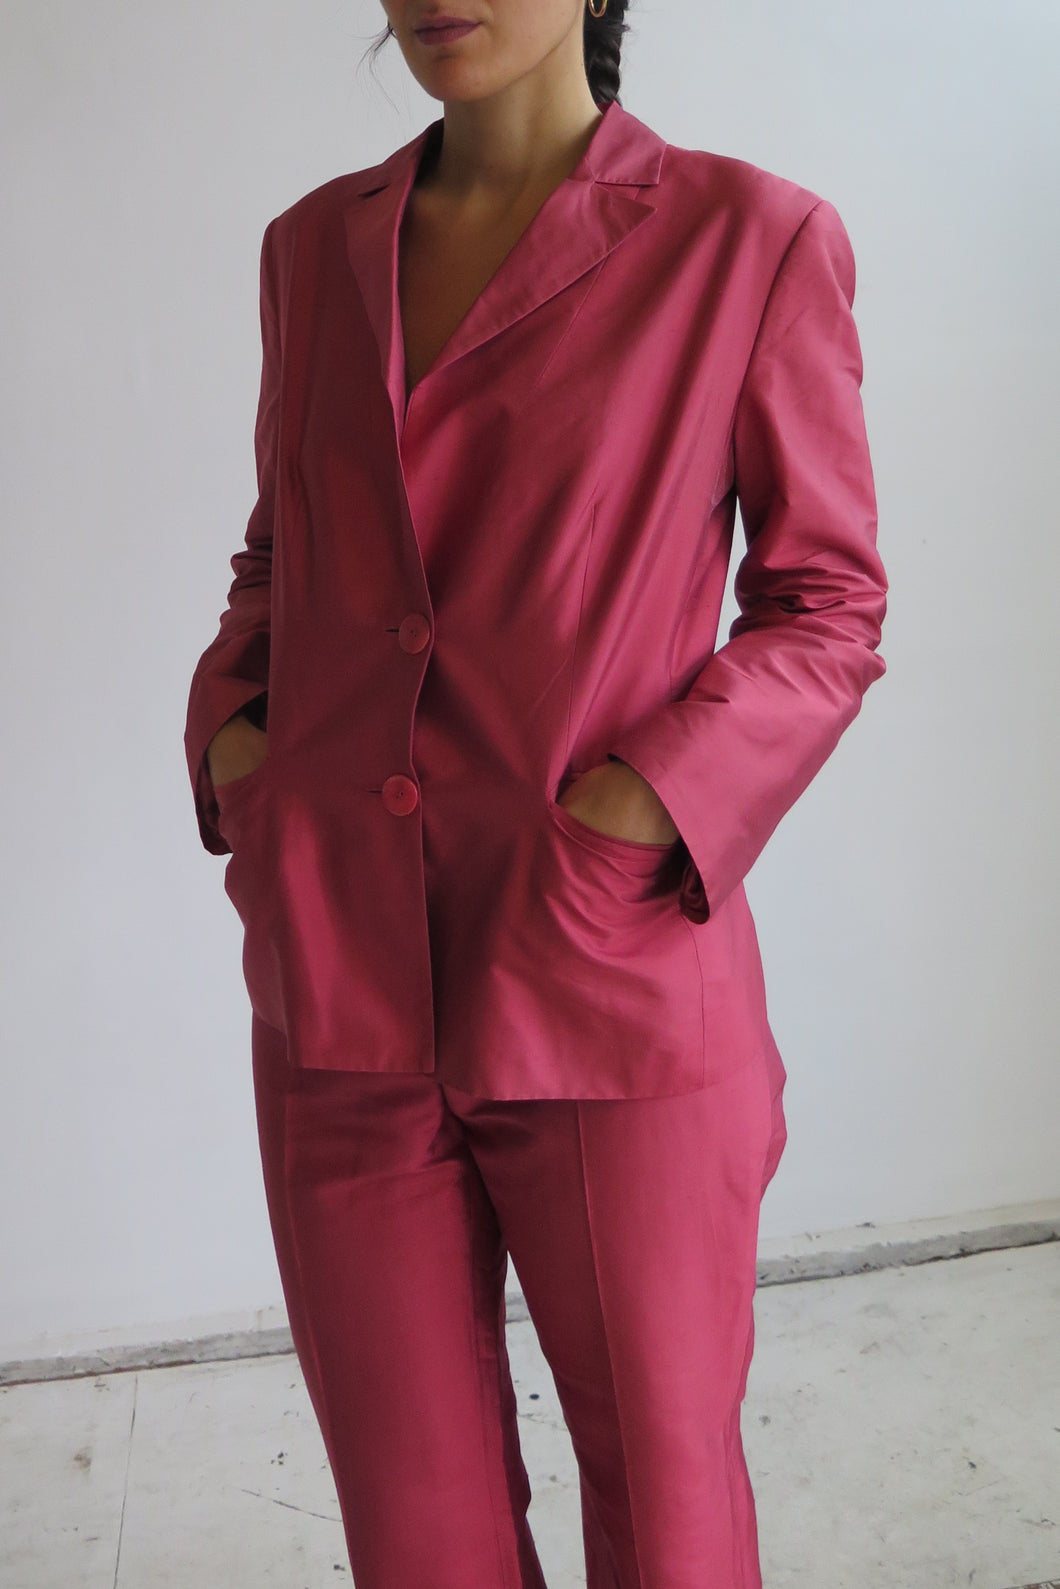 Luisa Spagnoli Fuchsia Silk Trousers Set - Studio Travel